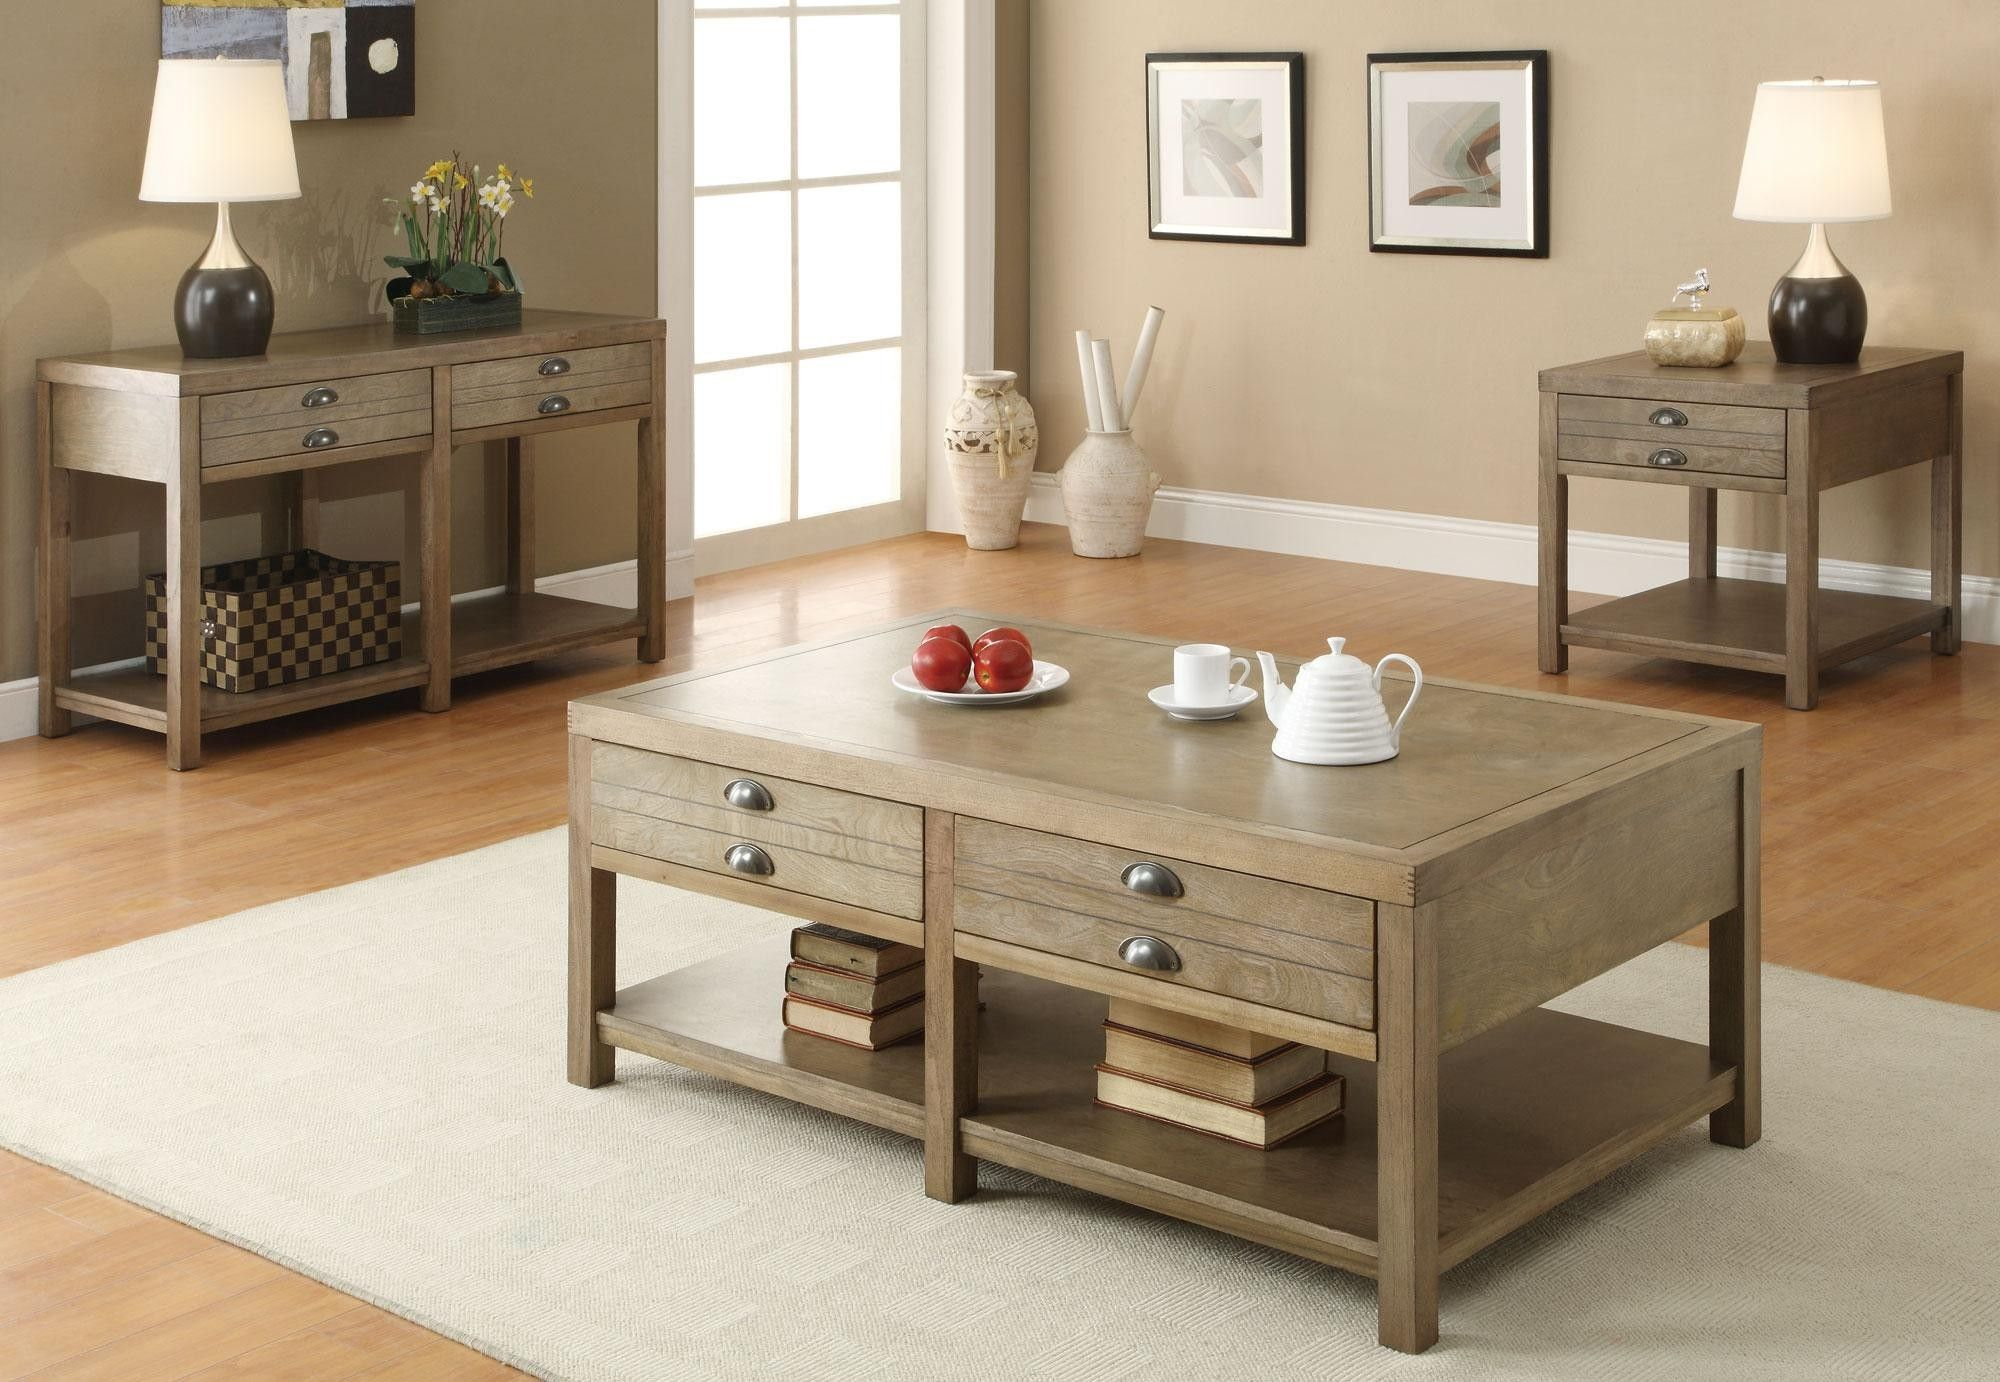 701958 57 Occasional Table Set Coffee Table Home Coffee Tables 3 Piece Coffee Table Set [ 1382 x 2000 Pixel ]